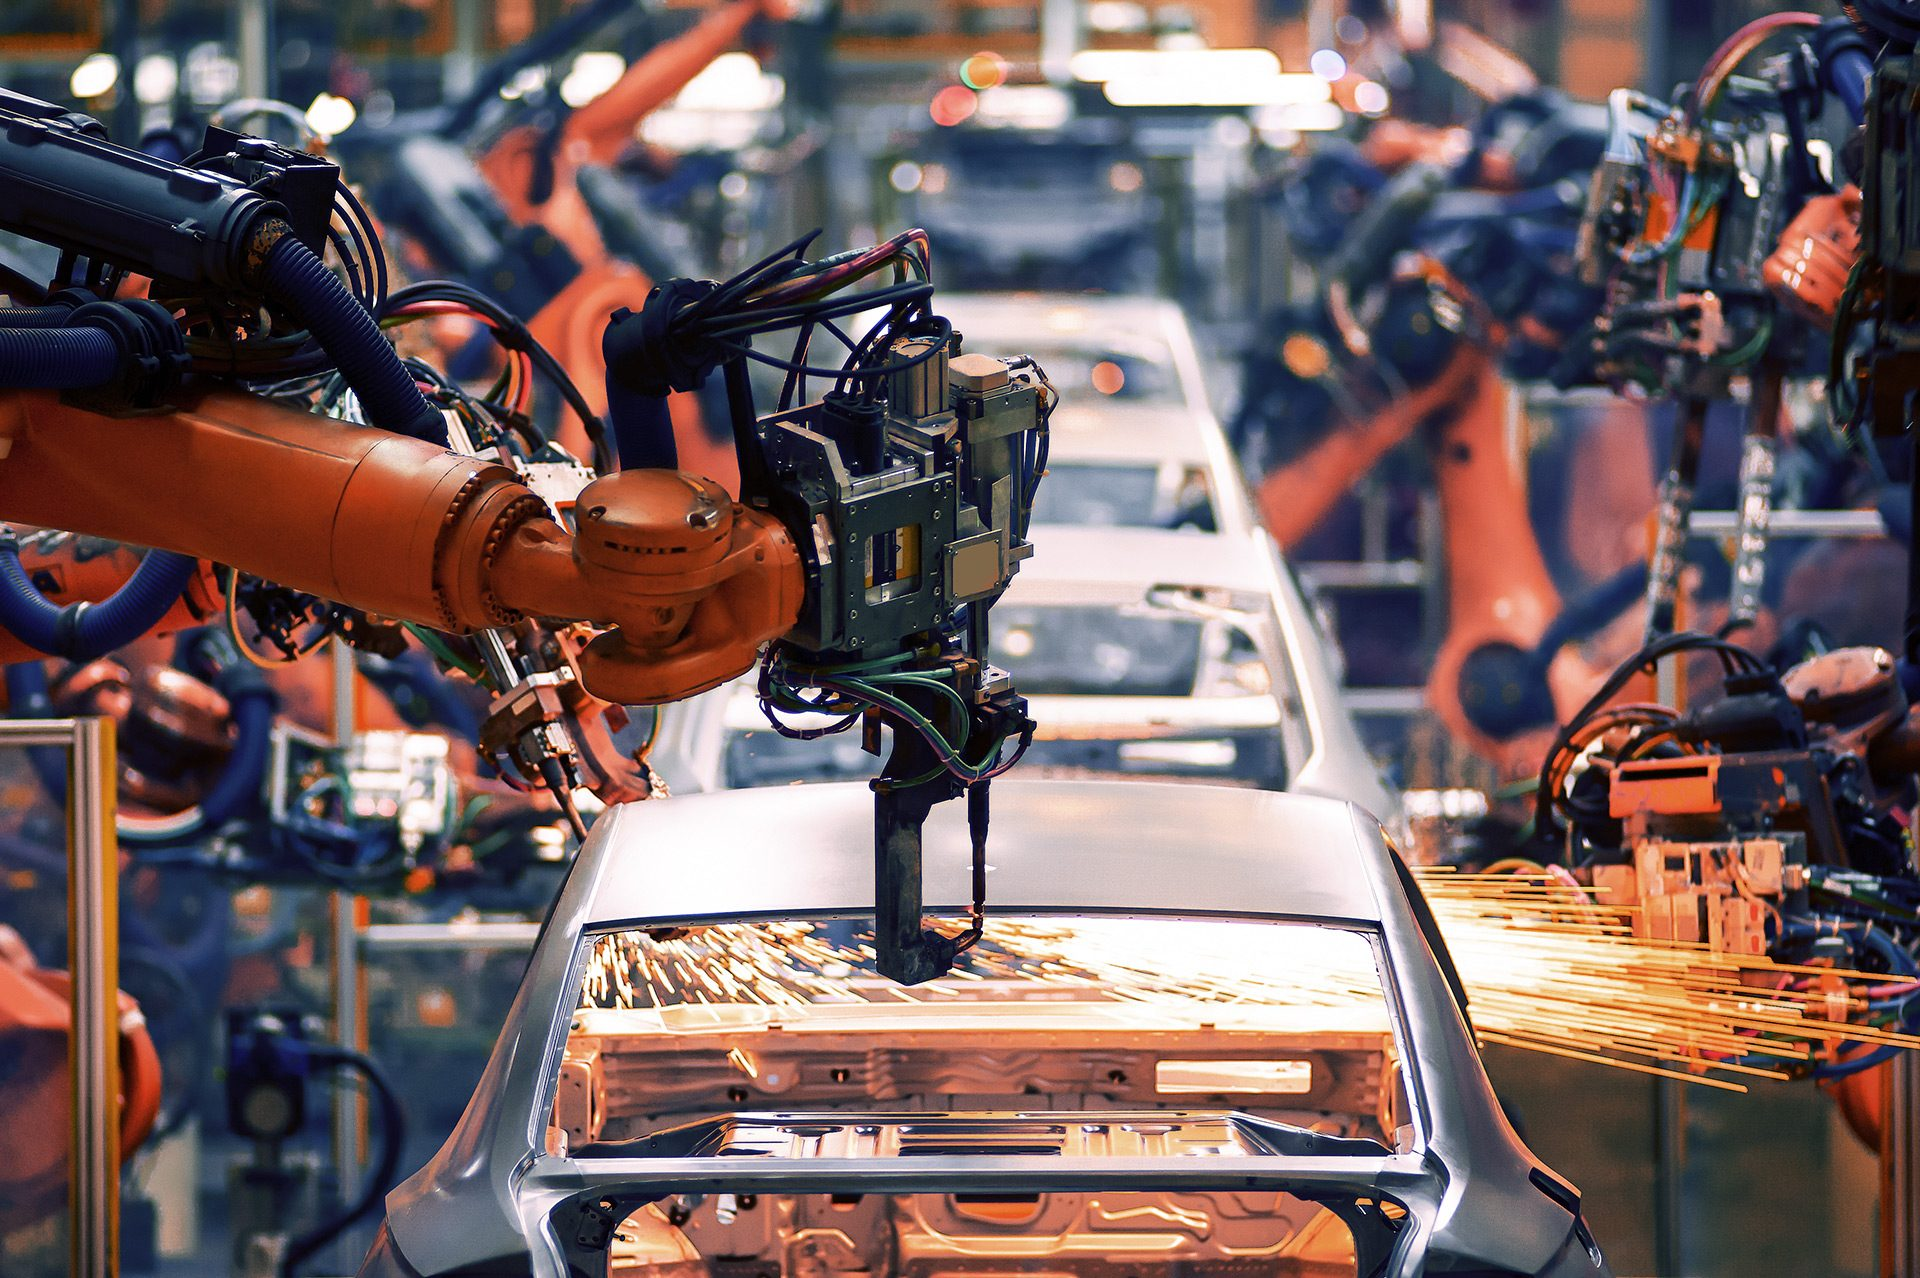 The Industrial IoT's Next Level is AI and Automation